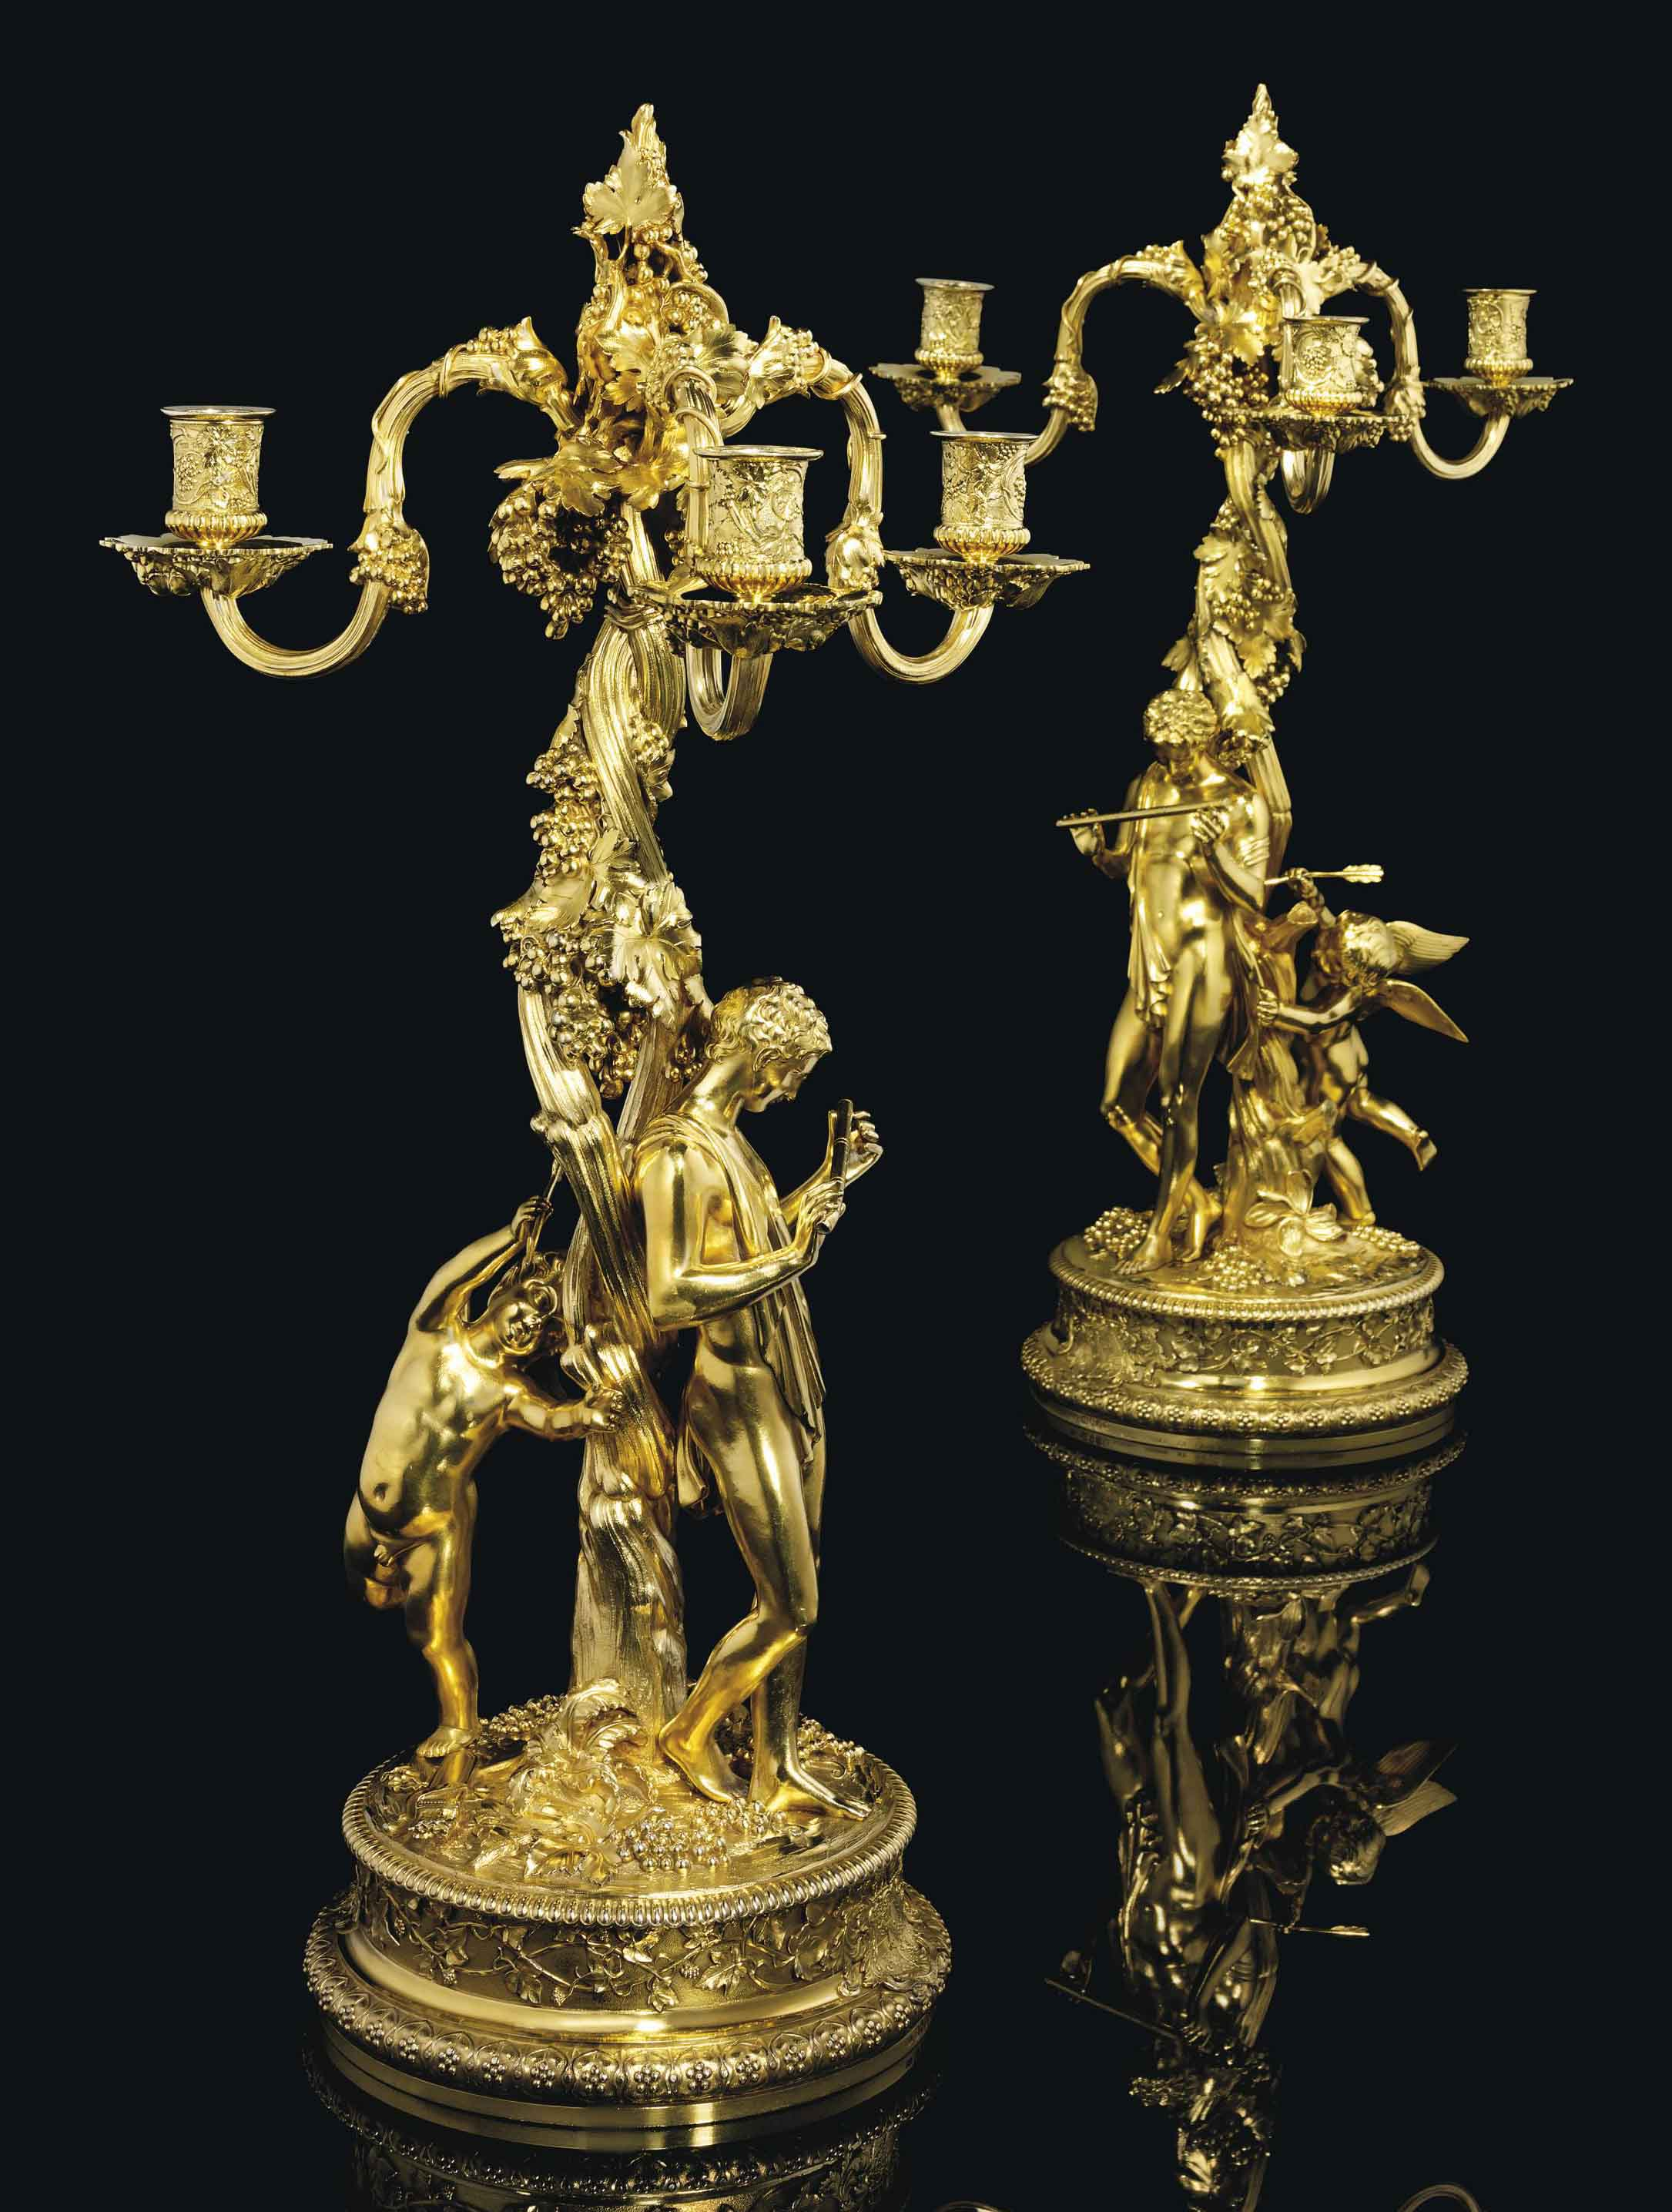 AN IMPORTANT PAIR OF GEORGE IV SILVER-GILT THREE-LIGHT CANDELABRA